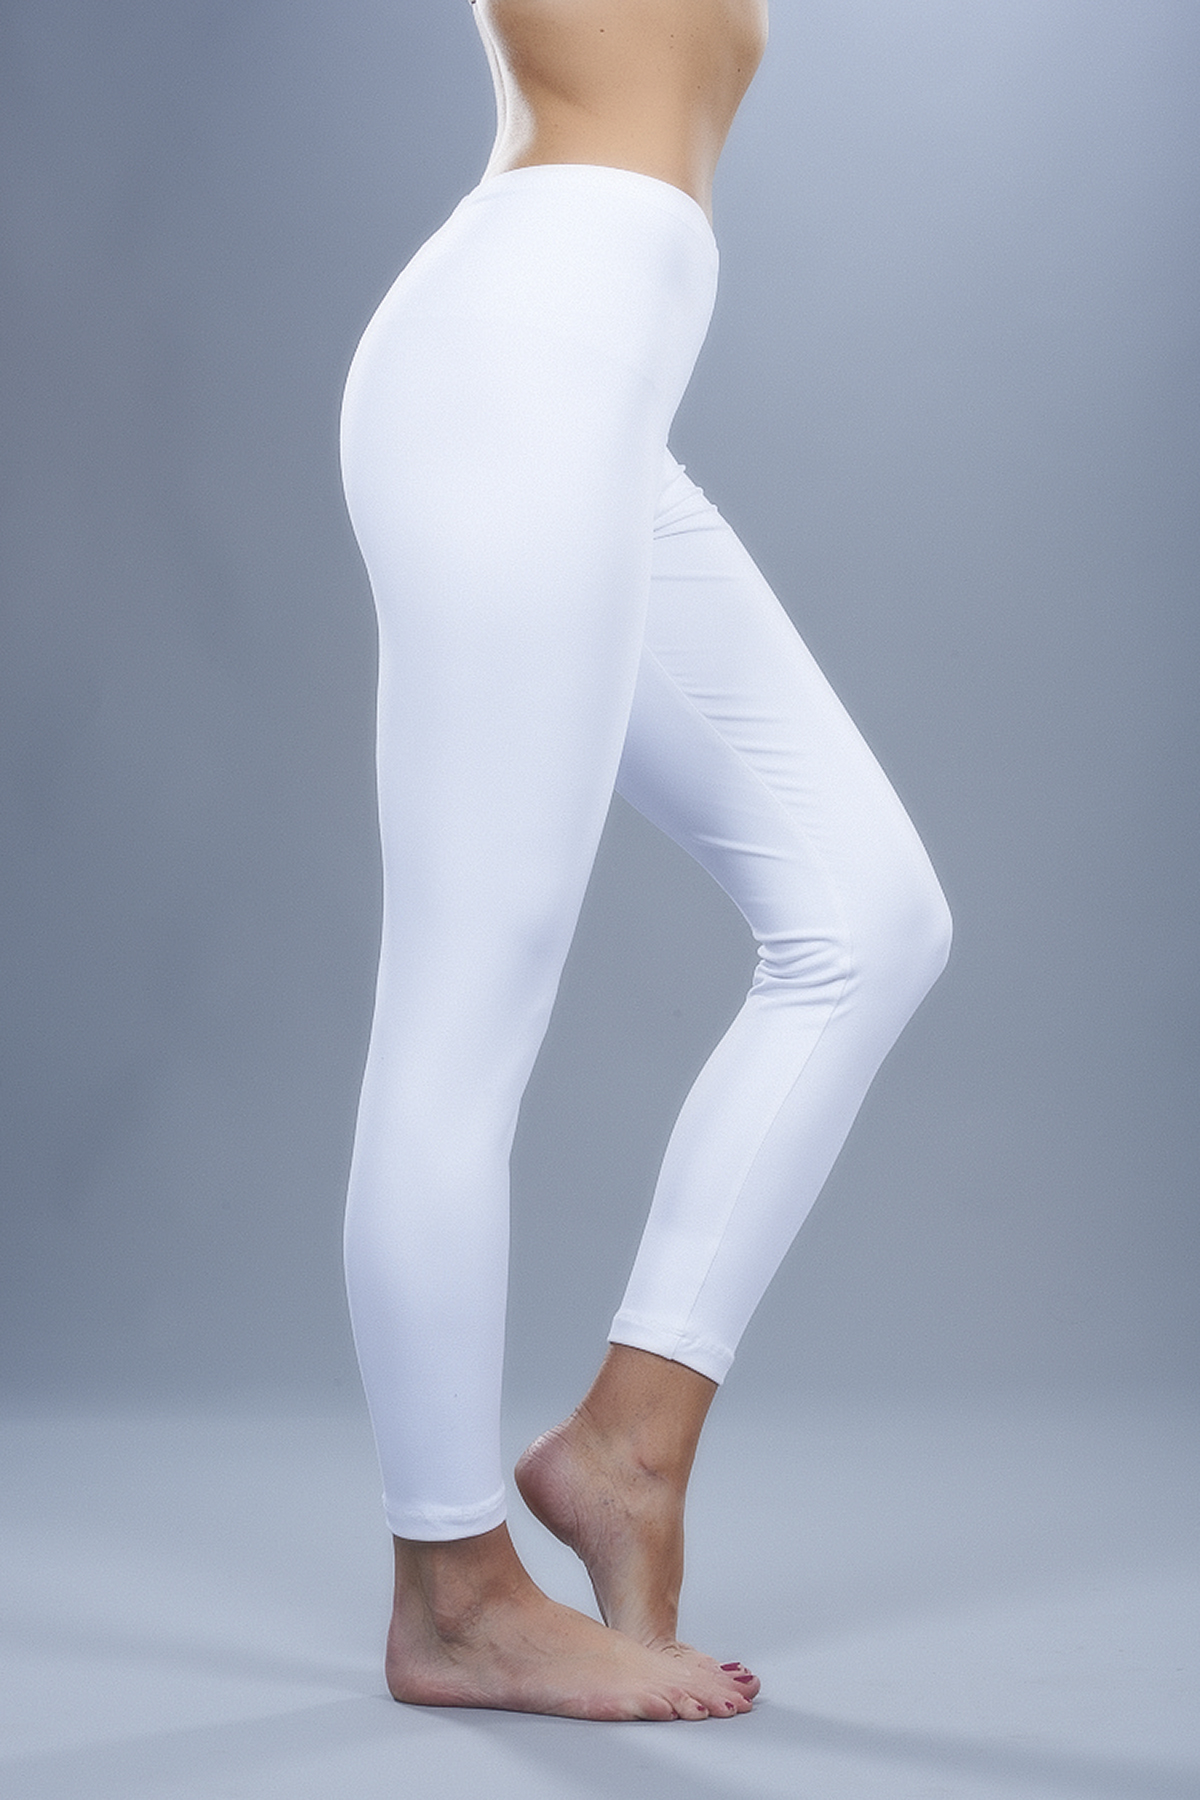 Uplifting fashion and comfort with white leggings